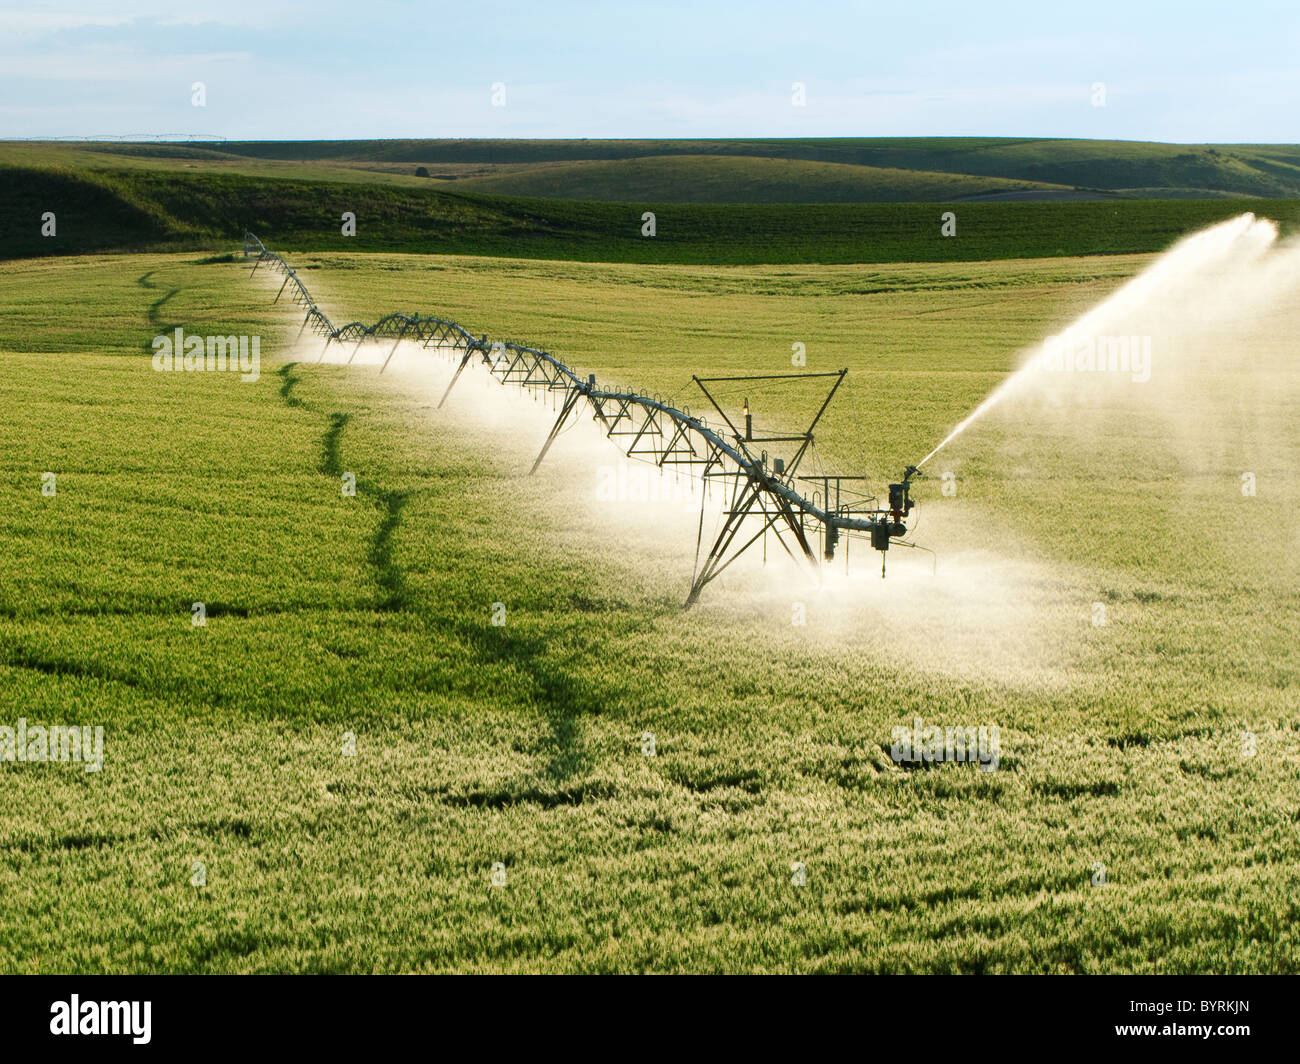 Agriculture - Operating center pivot irrigation system on a green grain field / Idaho, USA. - Stock Image